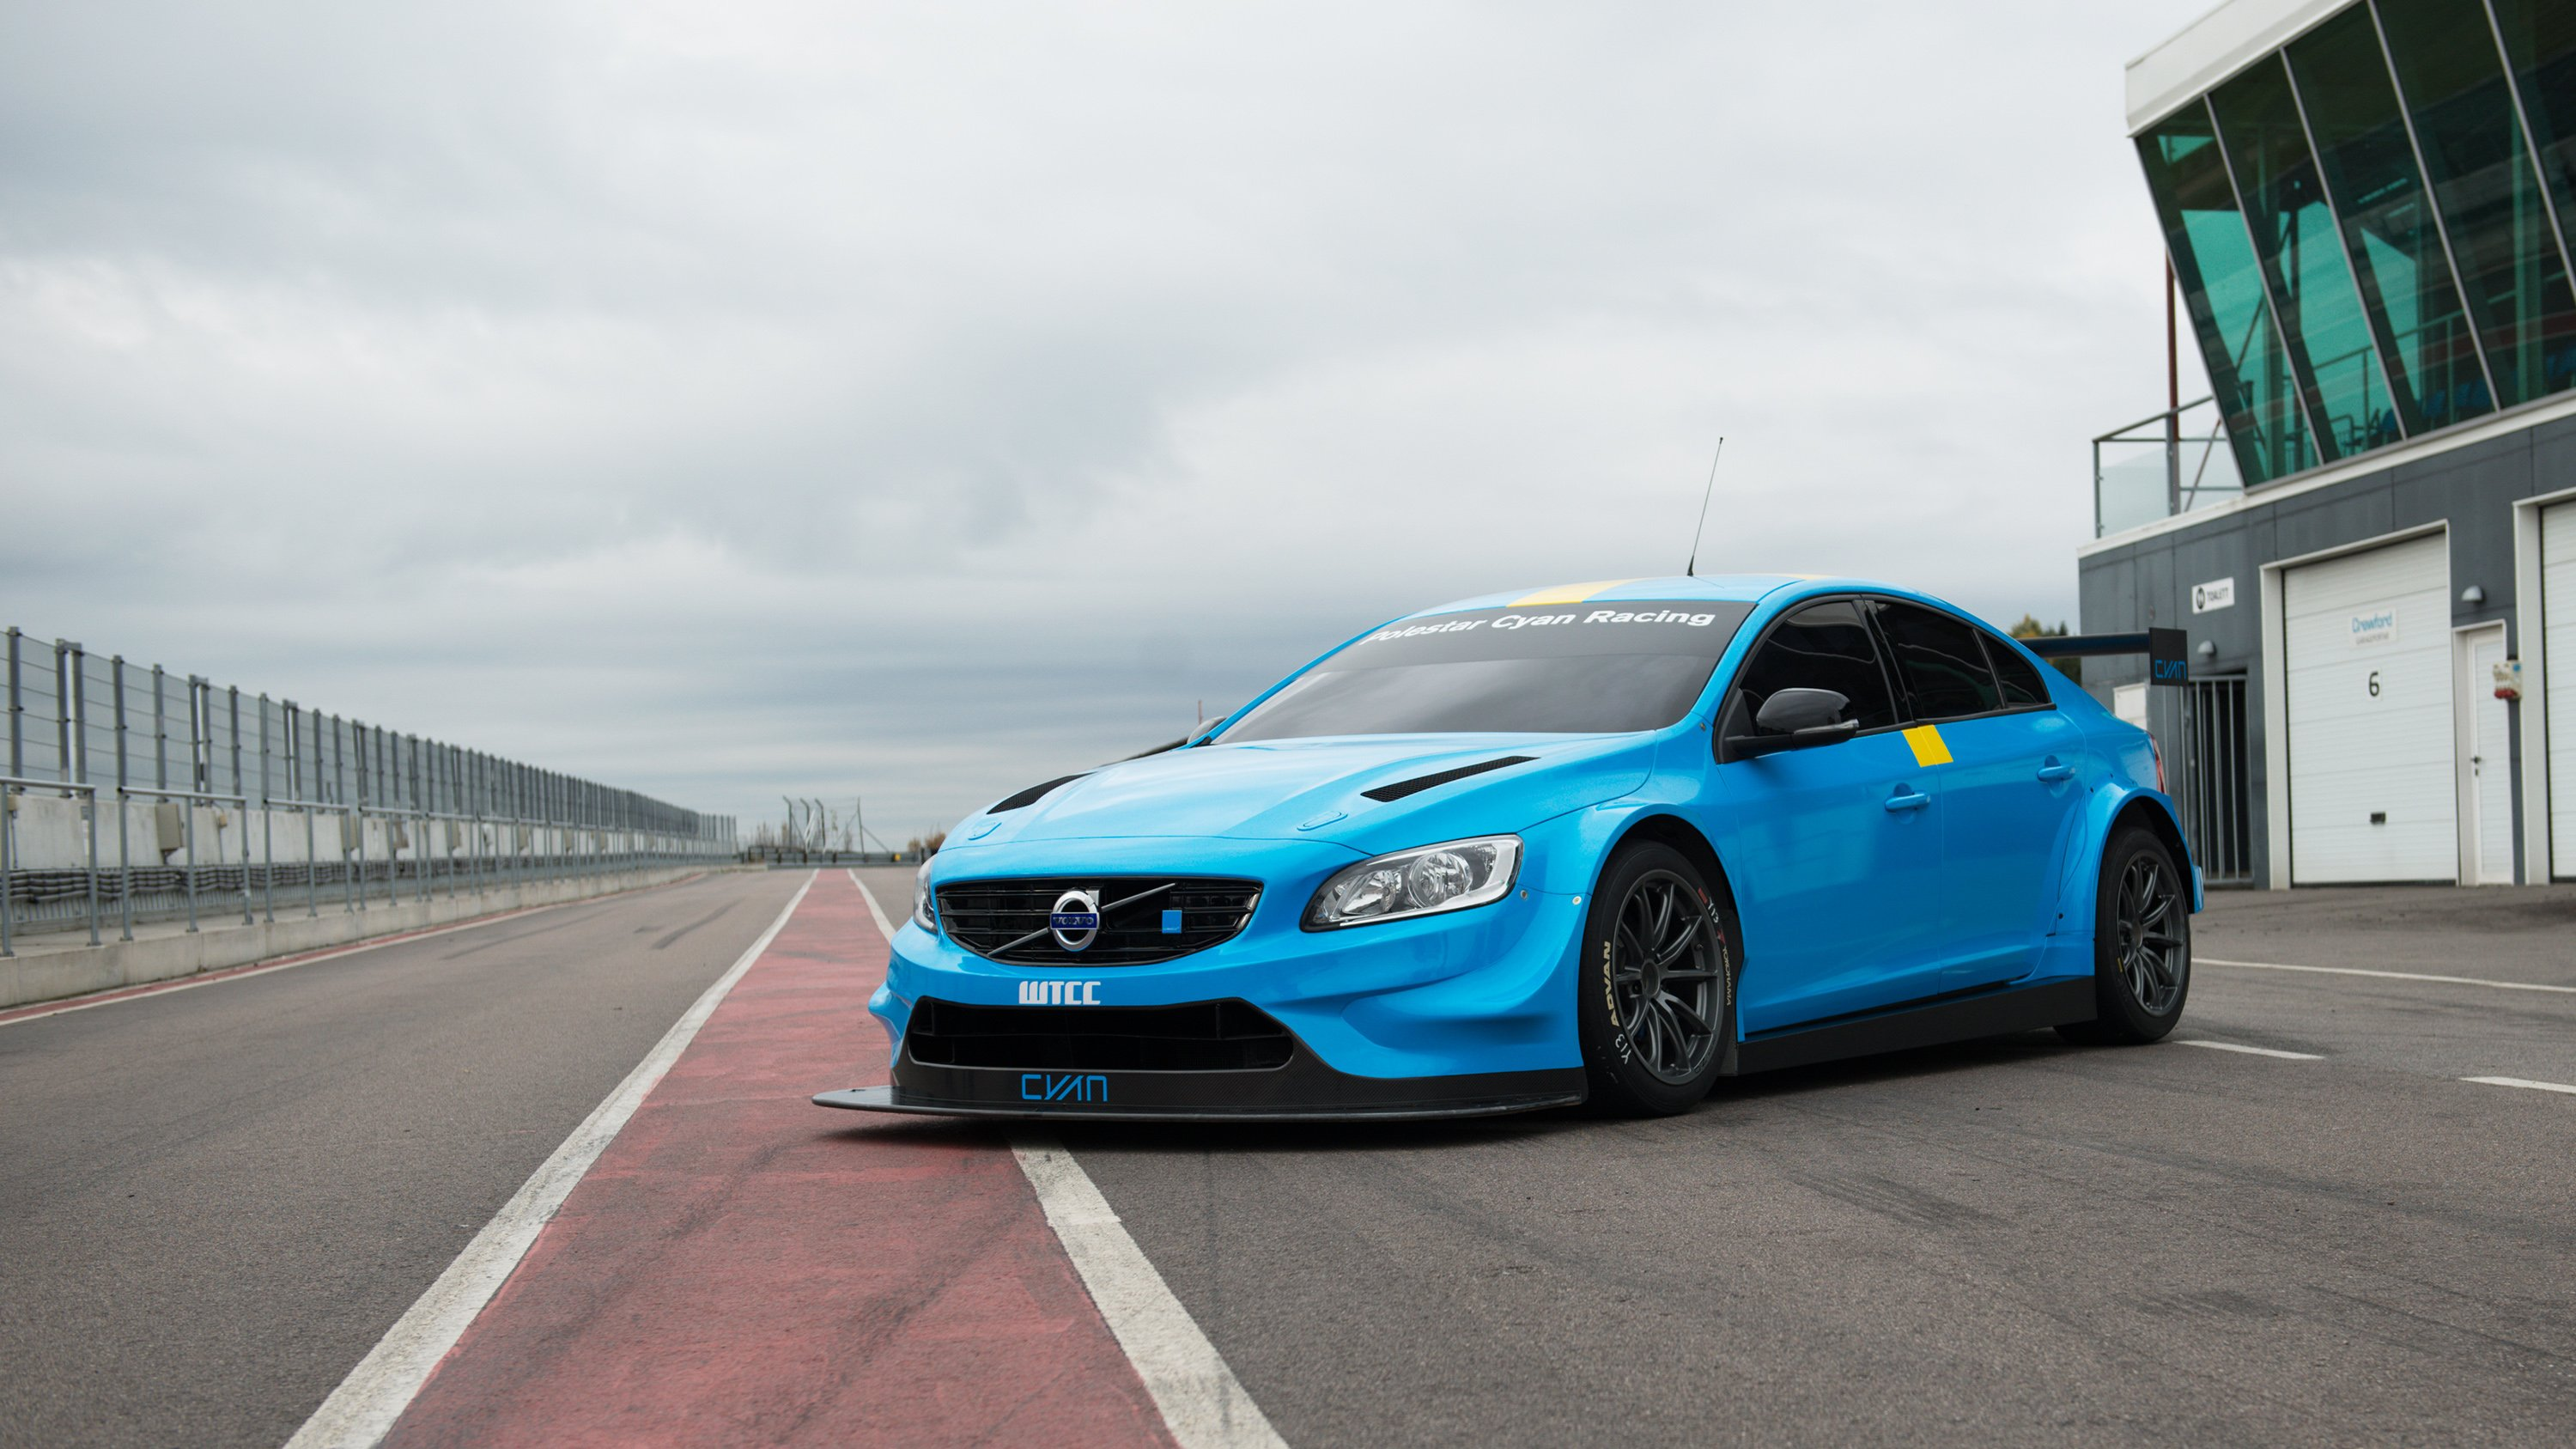 3000x1687 - WTCC Racing Wallpapers 17